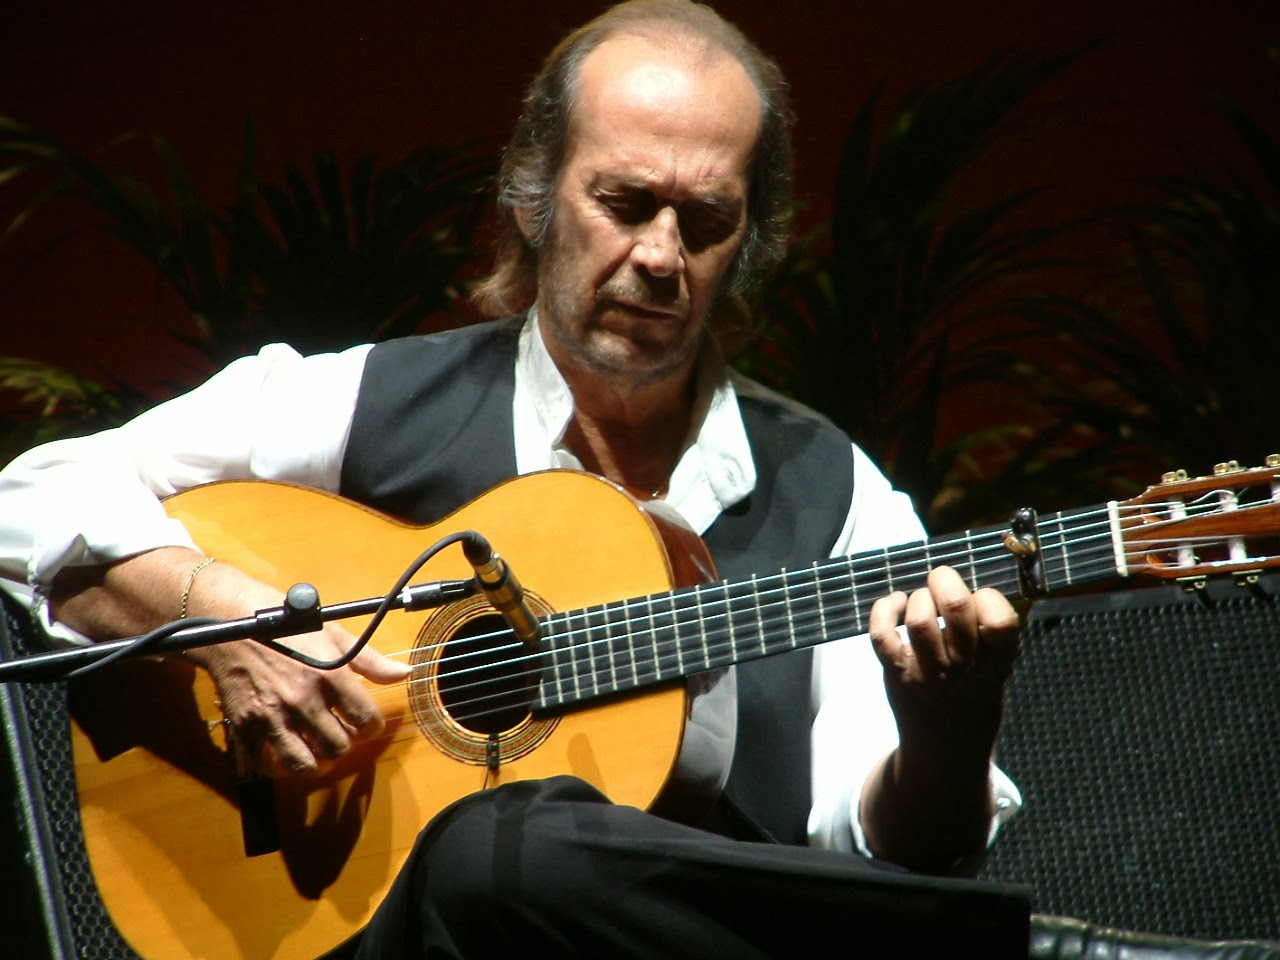 Listen to Paco de Lucia's library of music for free on Spotify